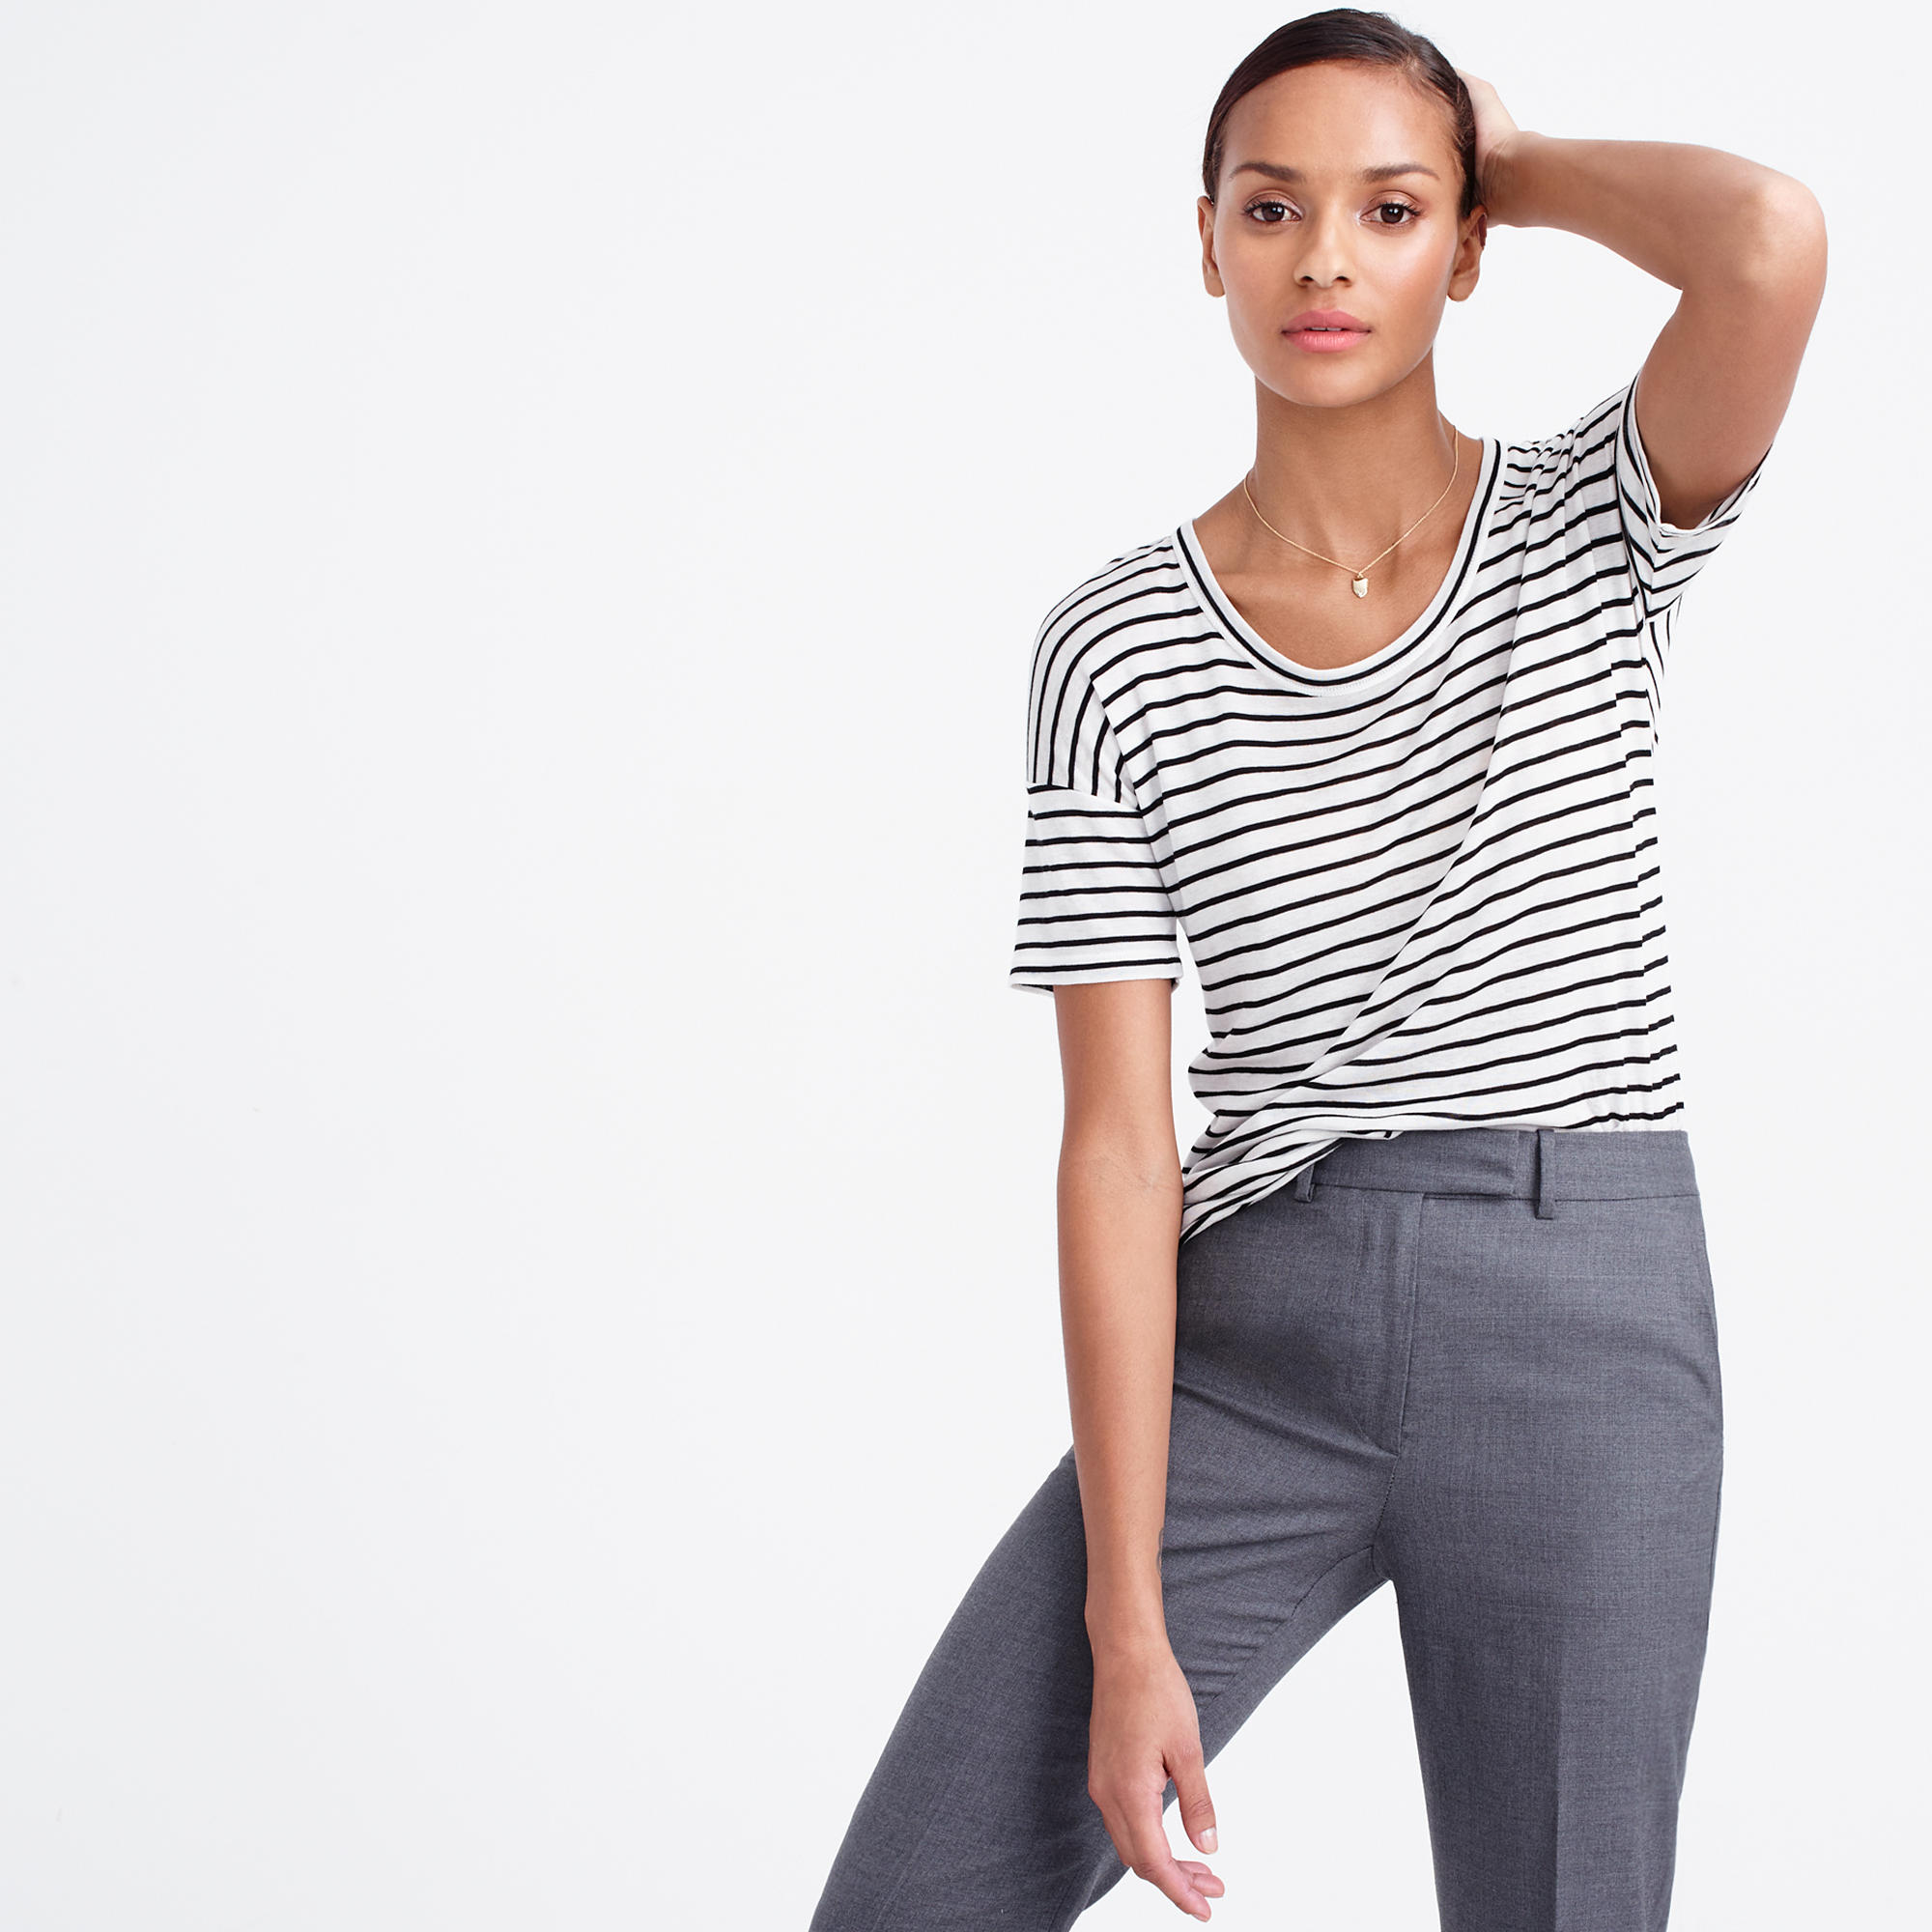 J. CREW 10 PERCENT T-SHIRT IN STRIPE $85